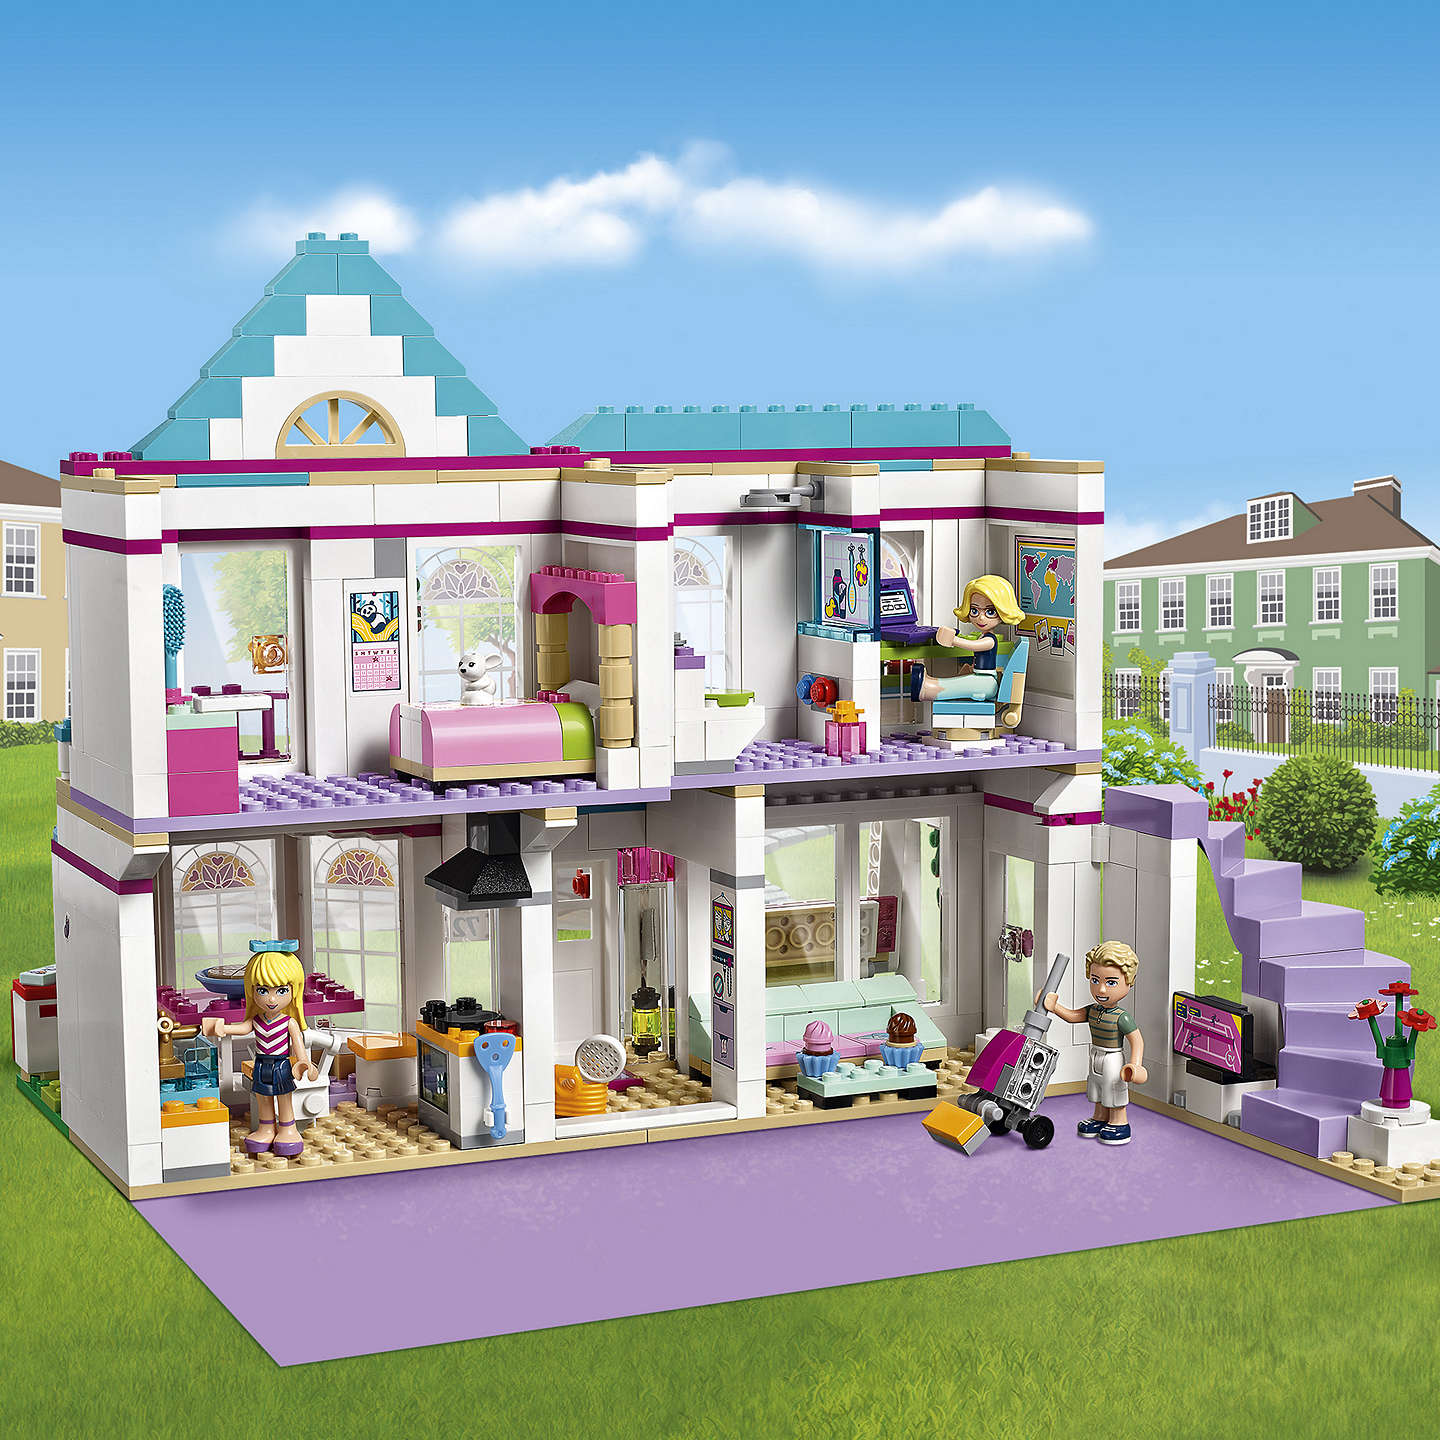 lego friends 41314 stephanie 39 s house at john lewis. Black Bedroom Furniture Sets. Home Design Ideas